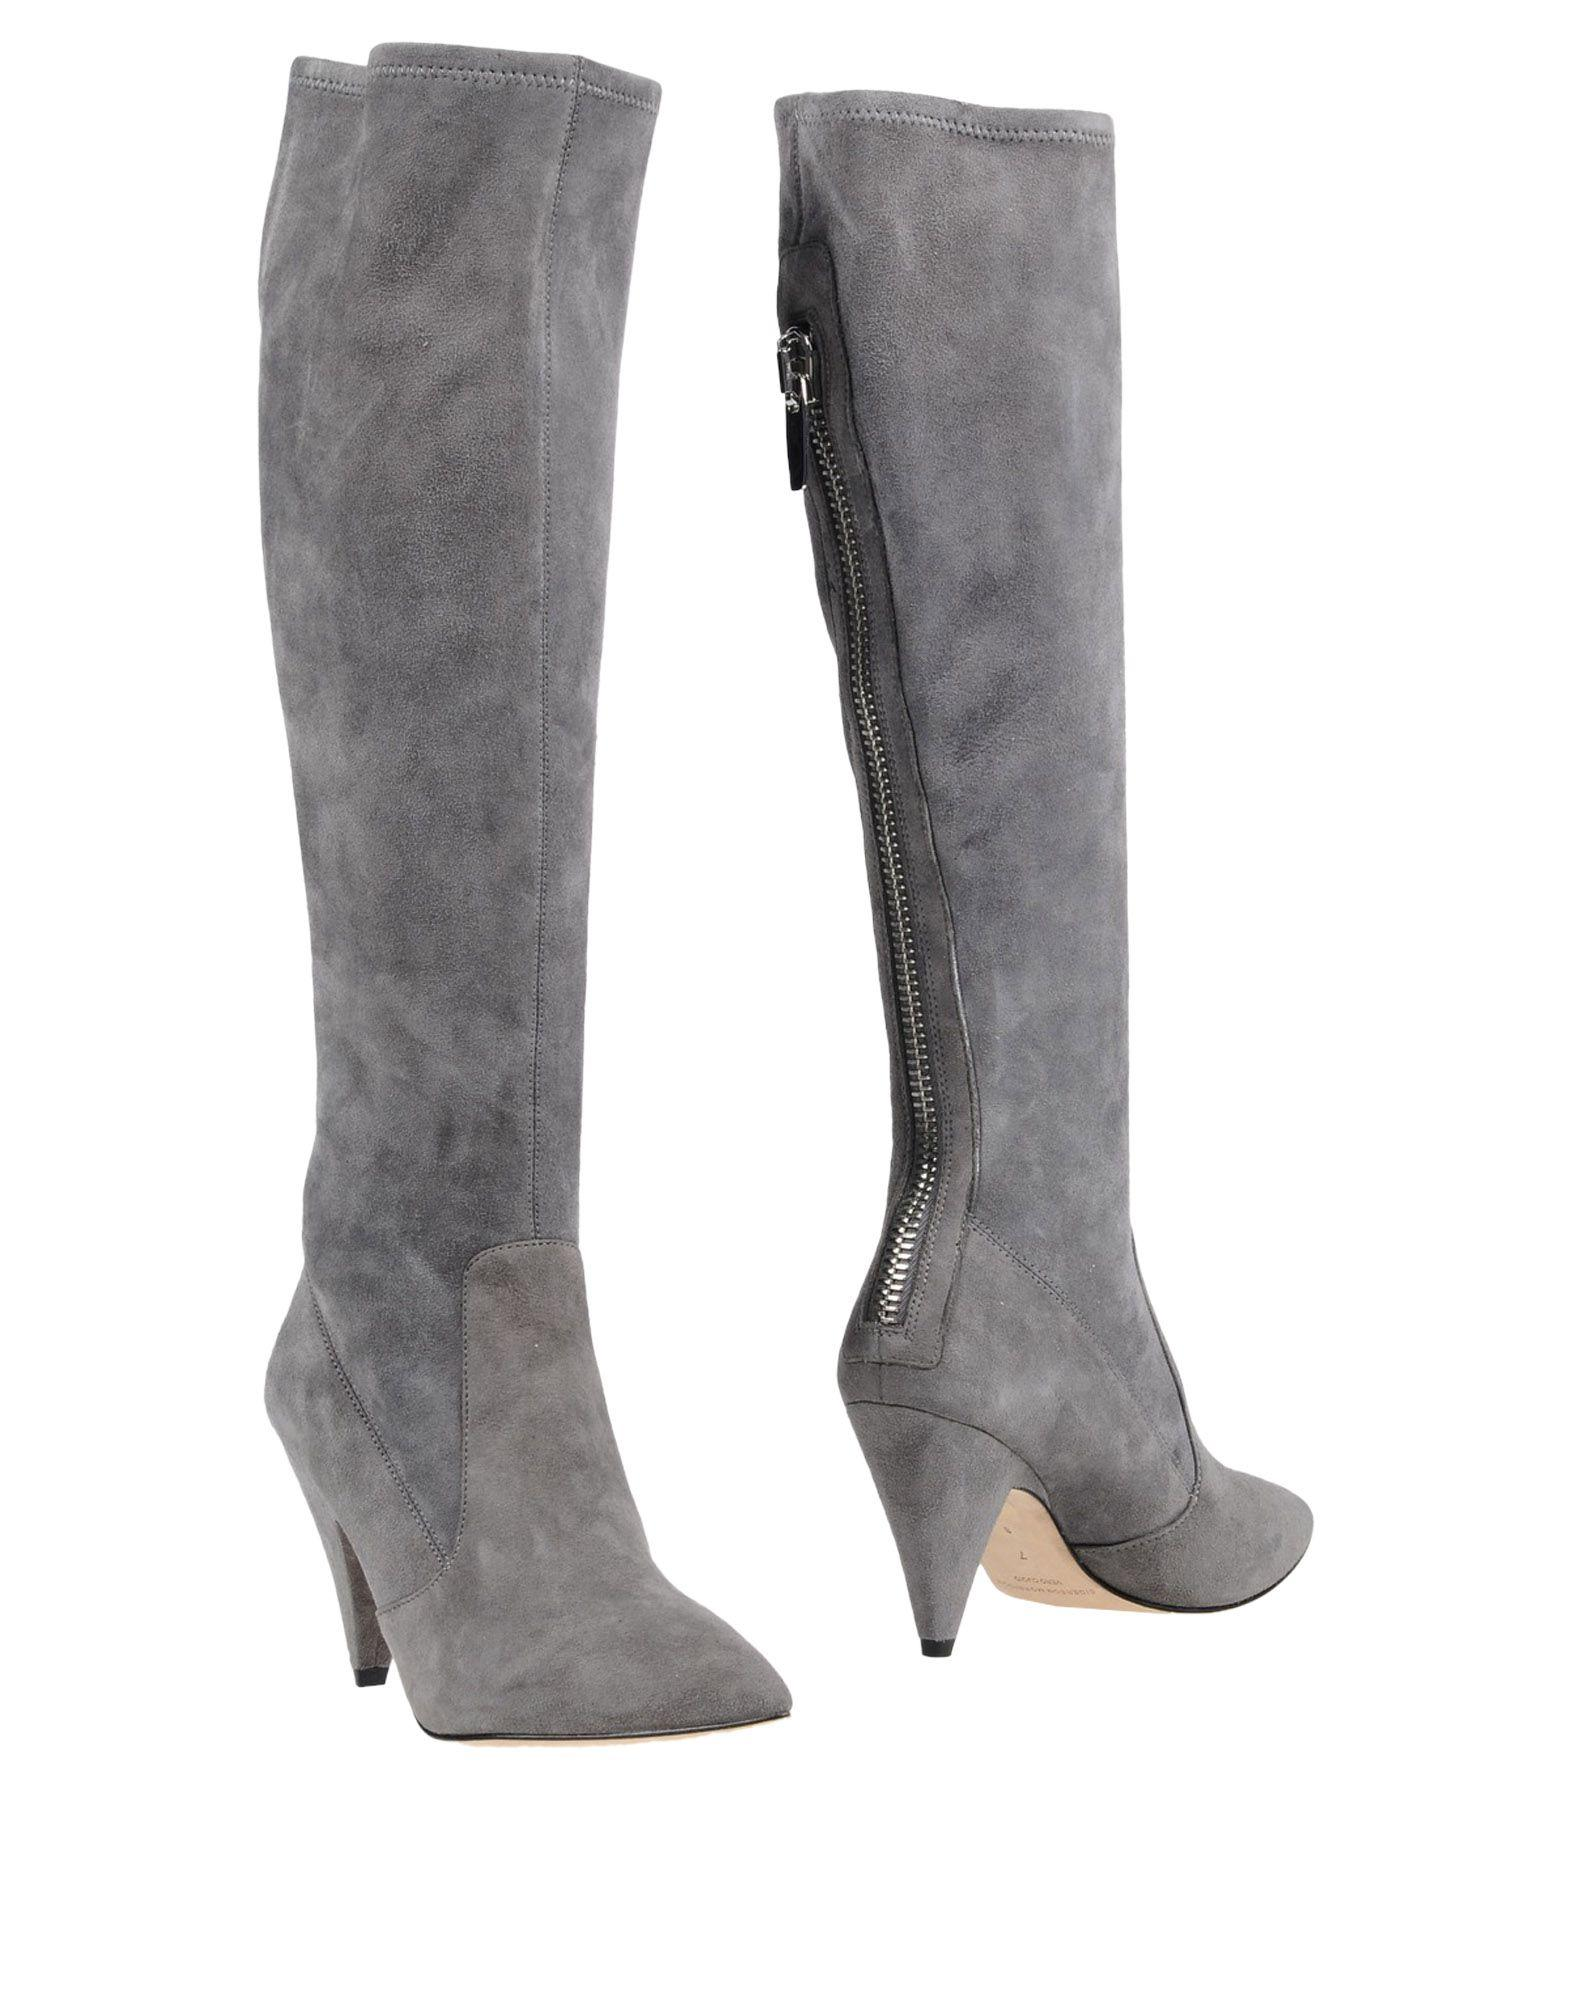 Sigerson Morrison Boots In Grey